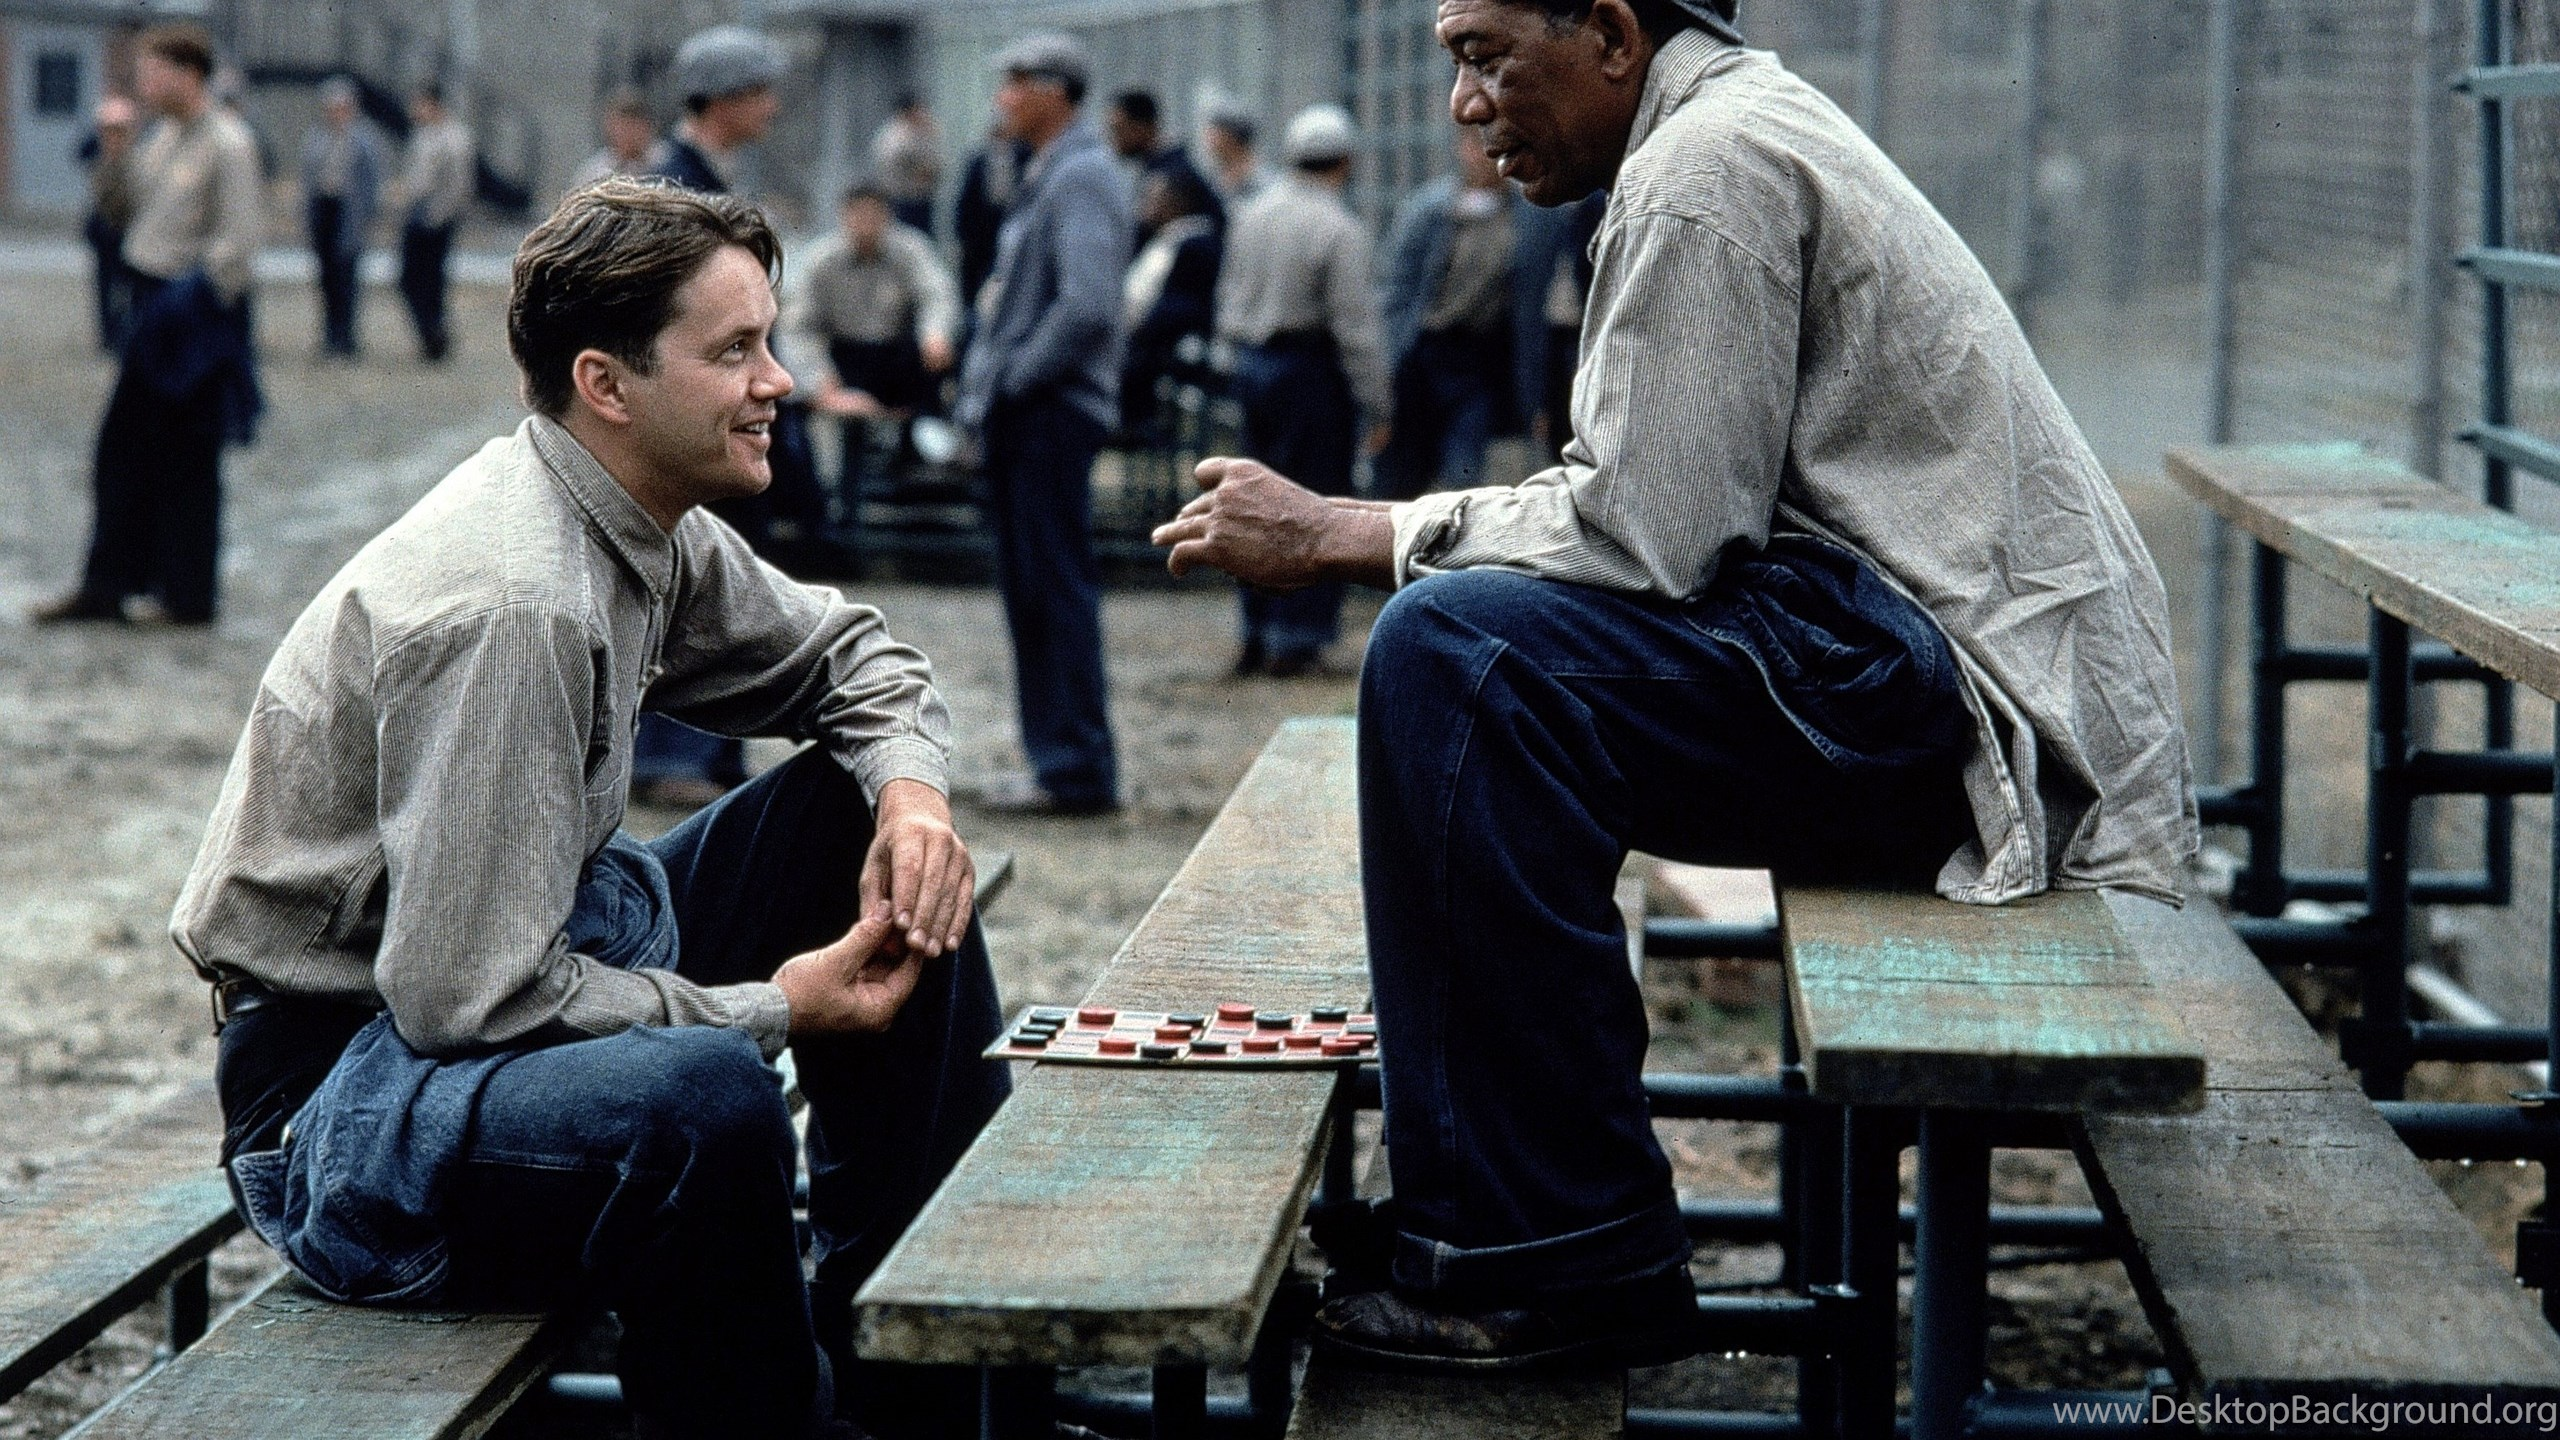 shawshank redemption book vs movie Book to movie: the shawshank redemption (1994) screenplay by frank darabont directed by frank darabont based on the novella rita hayworth and the shawshank redemption by stephen king from the collection, different seasons.